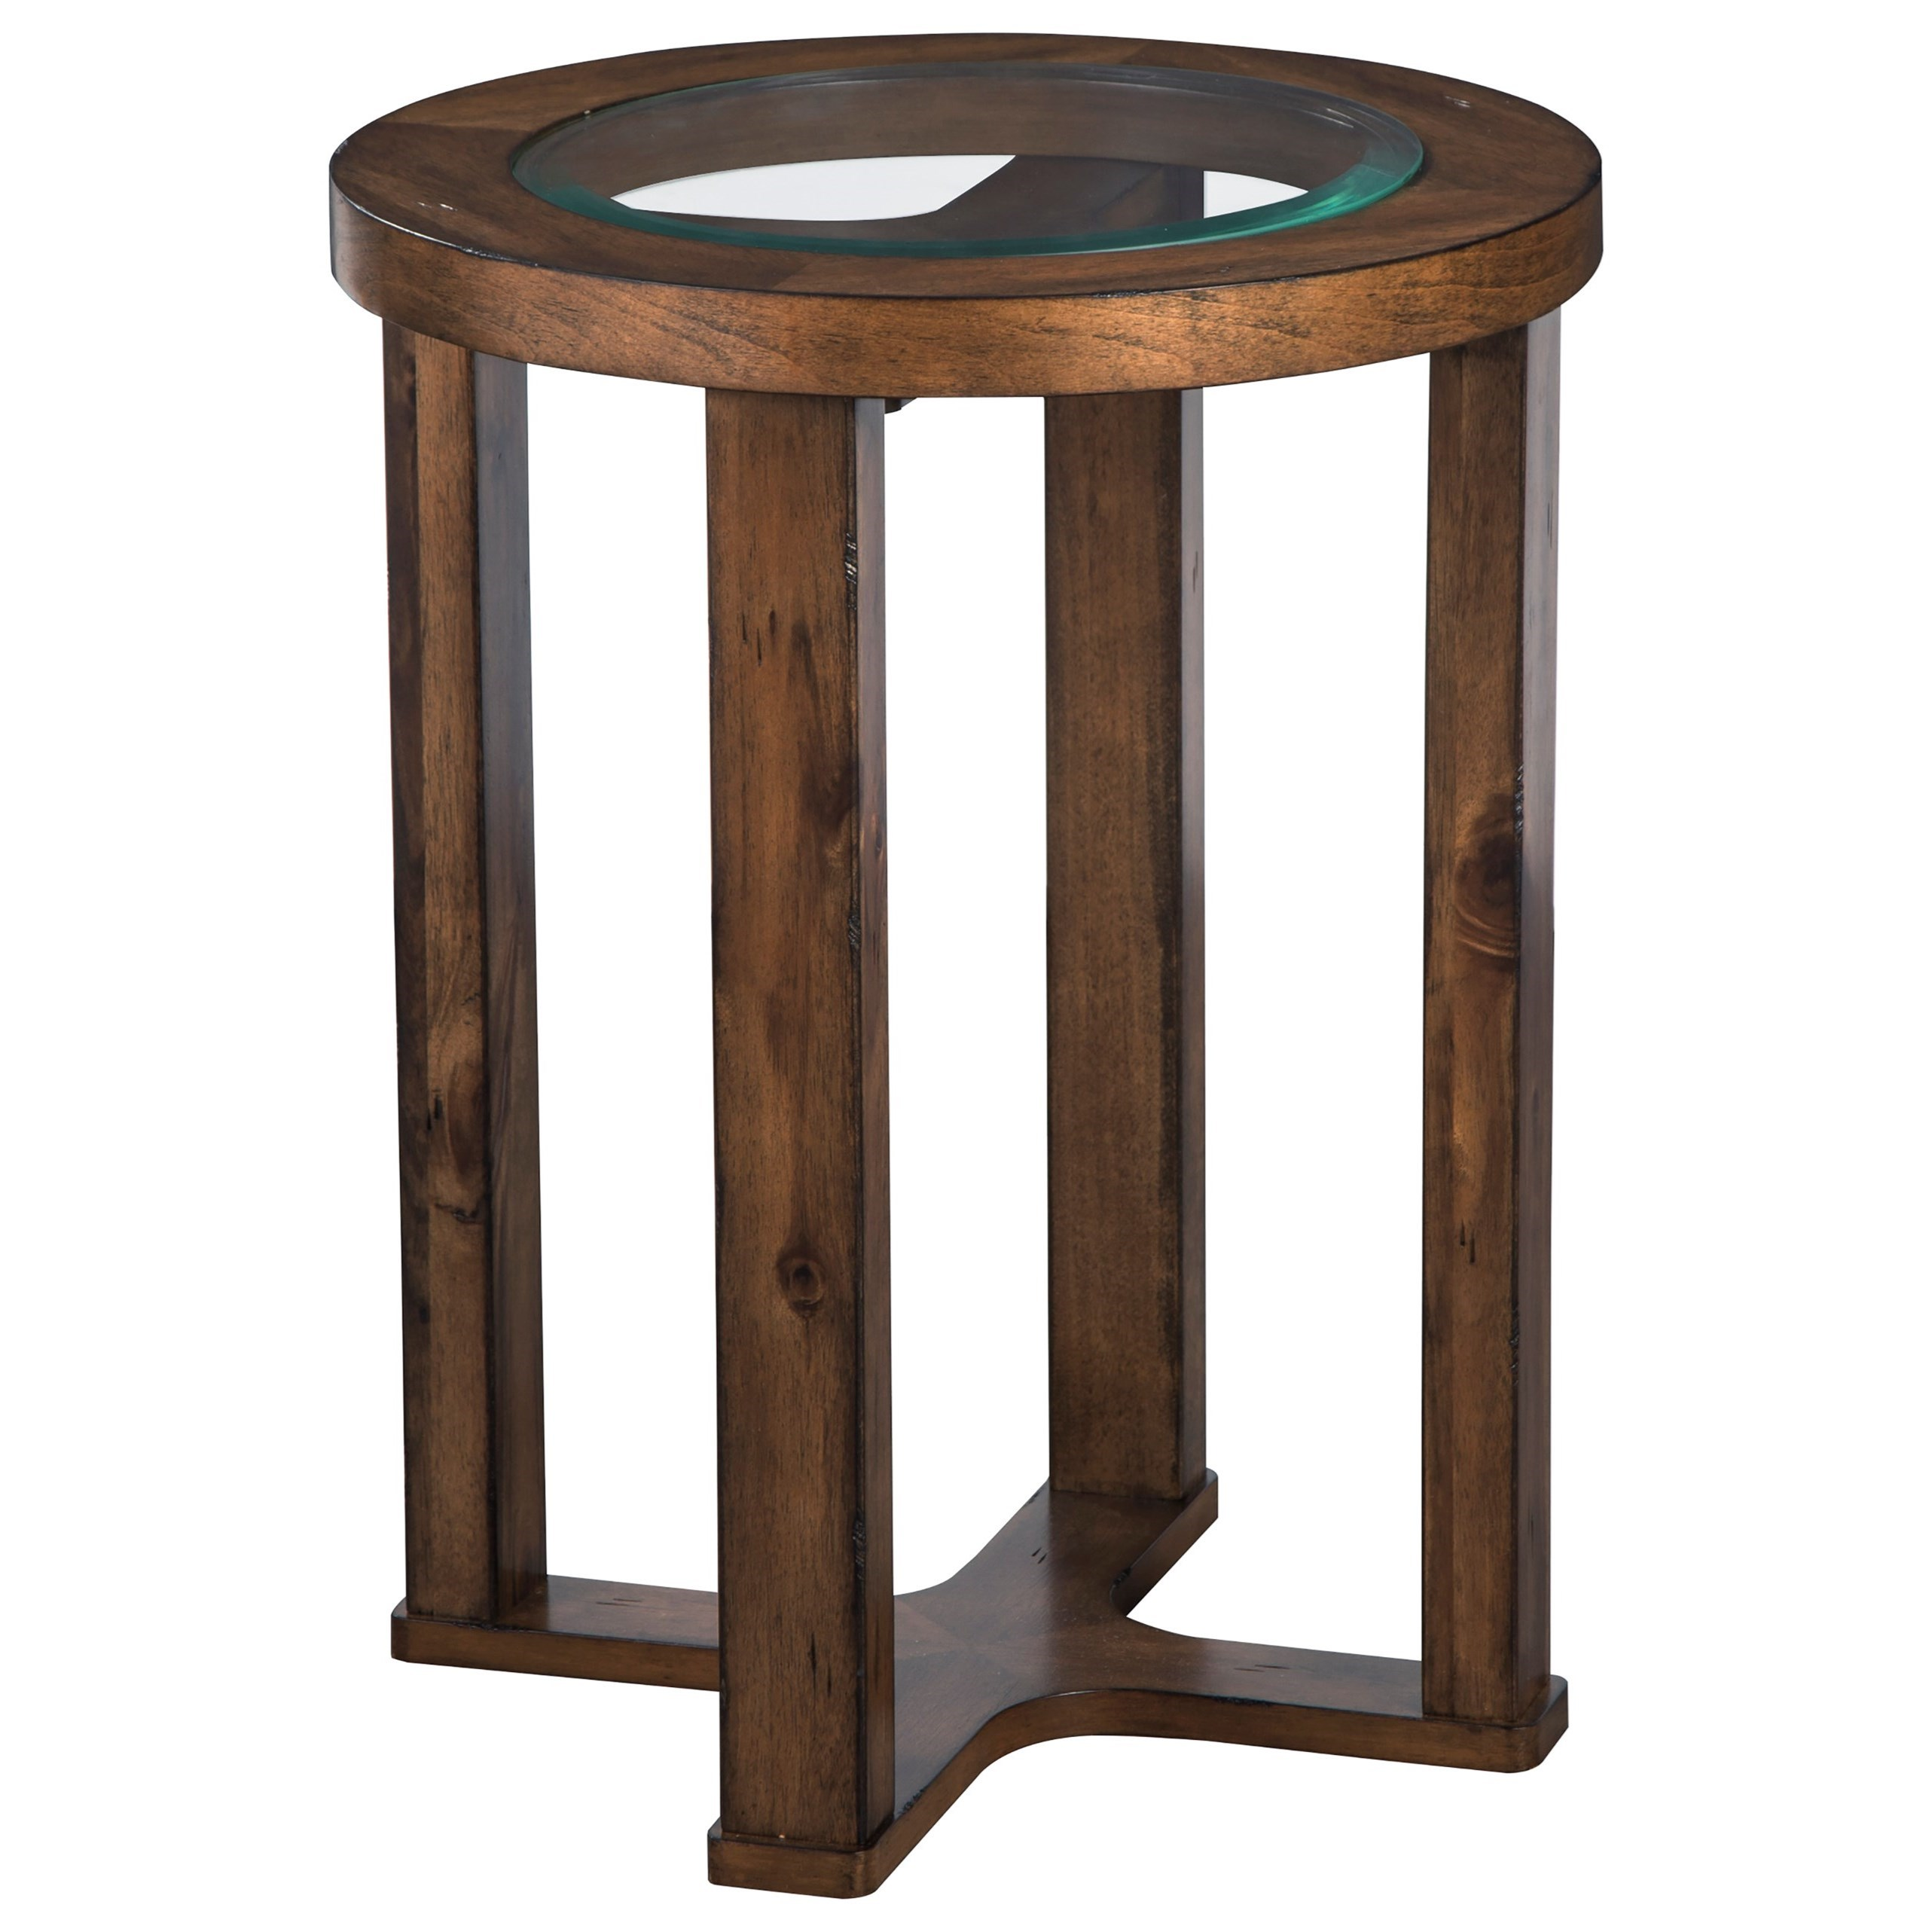 Hannery Round End Table by Ashley (Signature Design) at Johnny Janosik